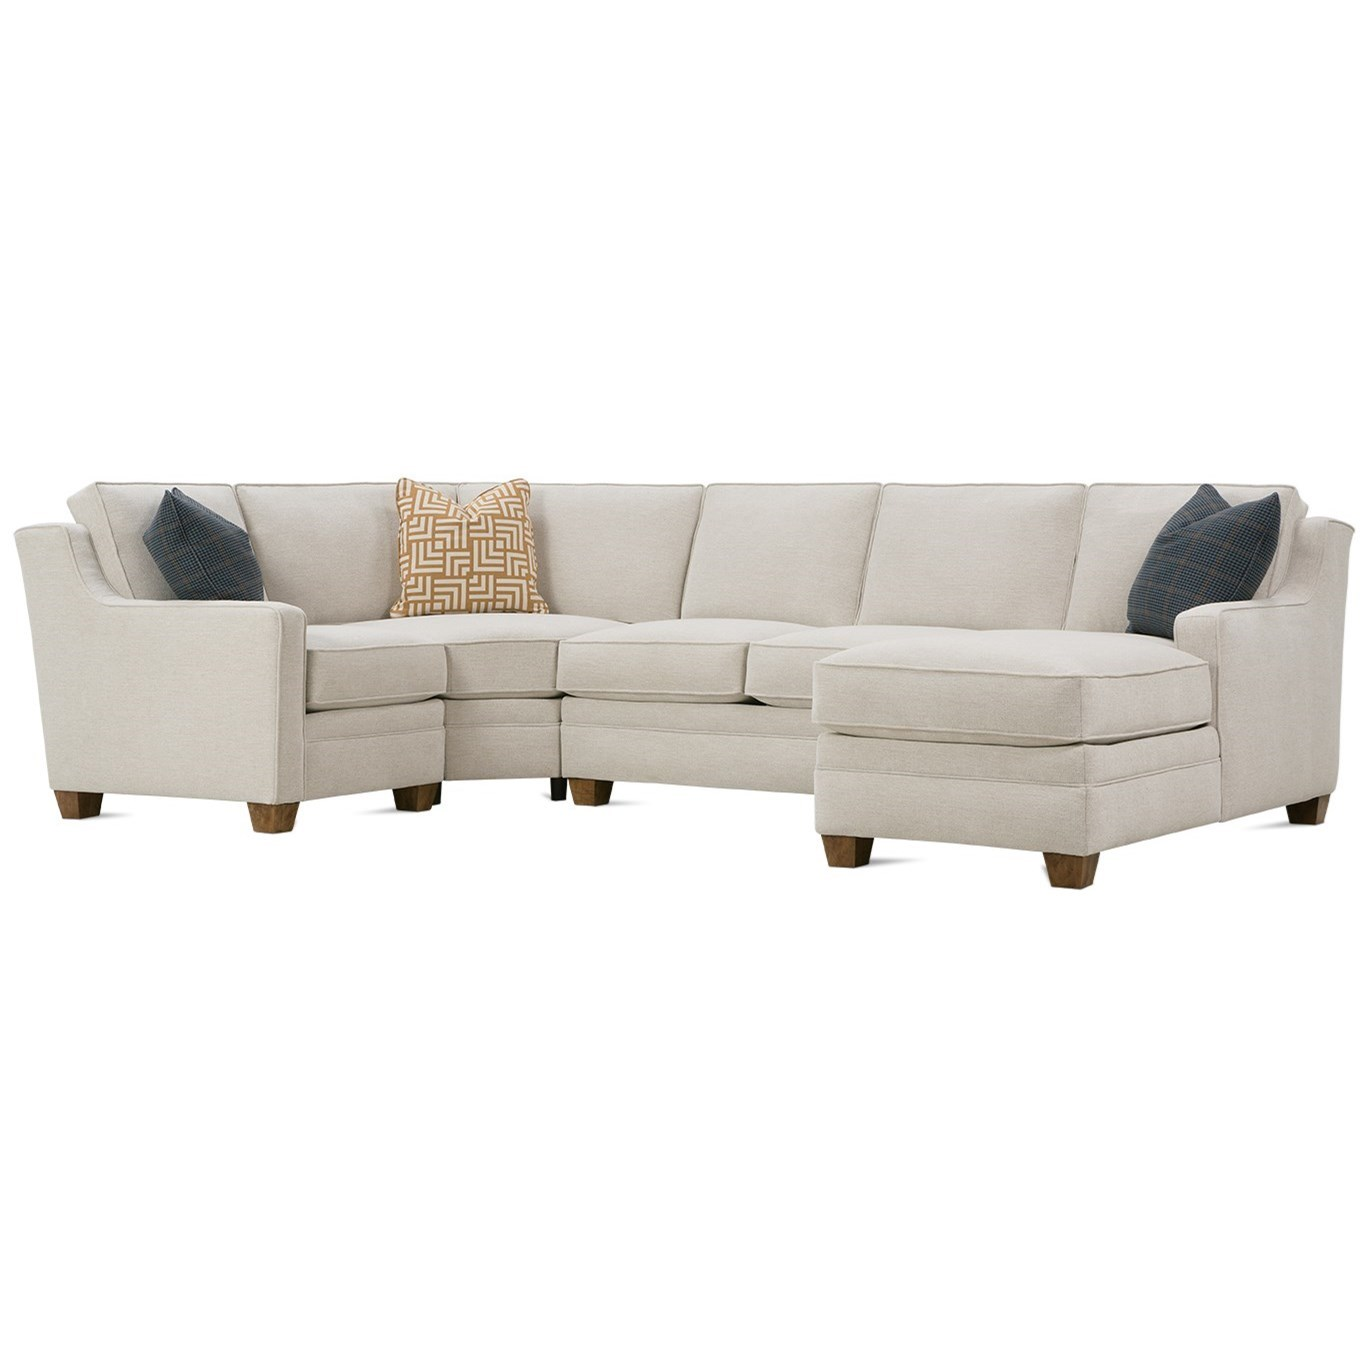 Fuller 4-Piece Sectional with RAF Chaise by Rowe at Baer's Furniture